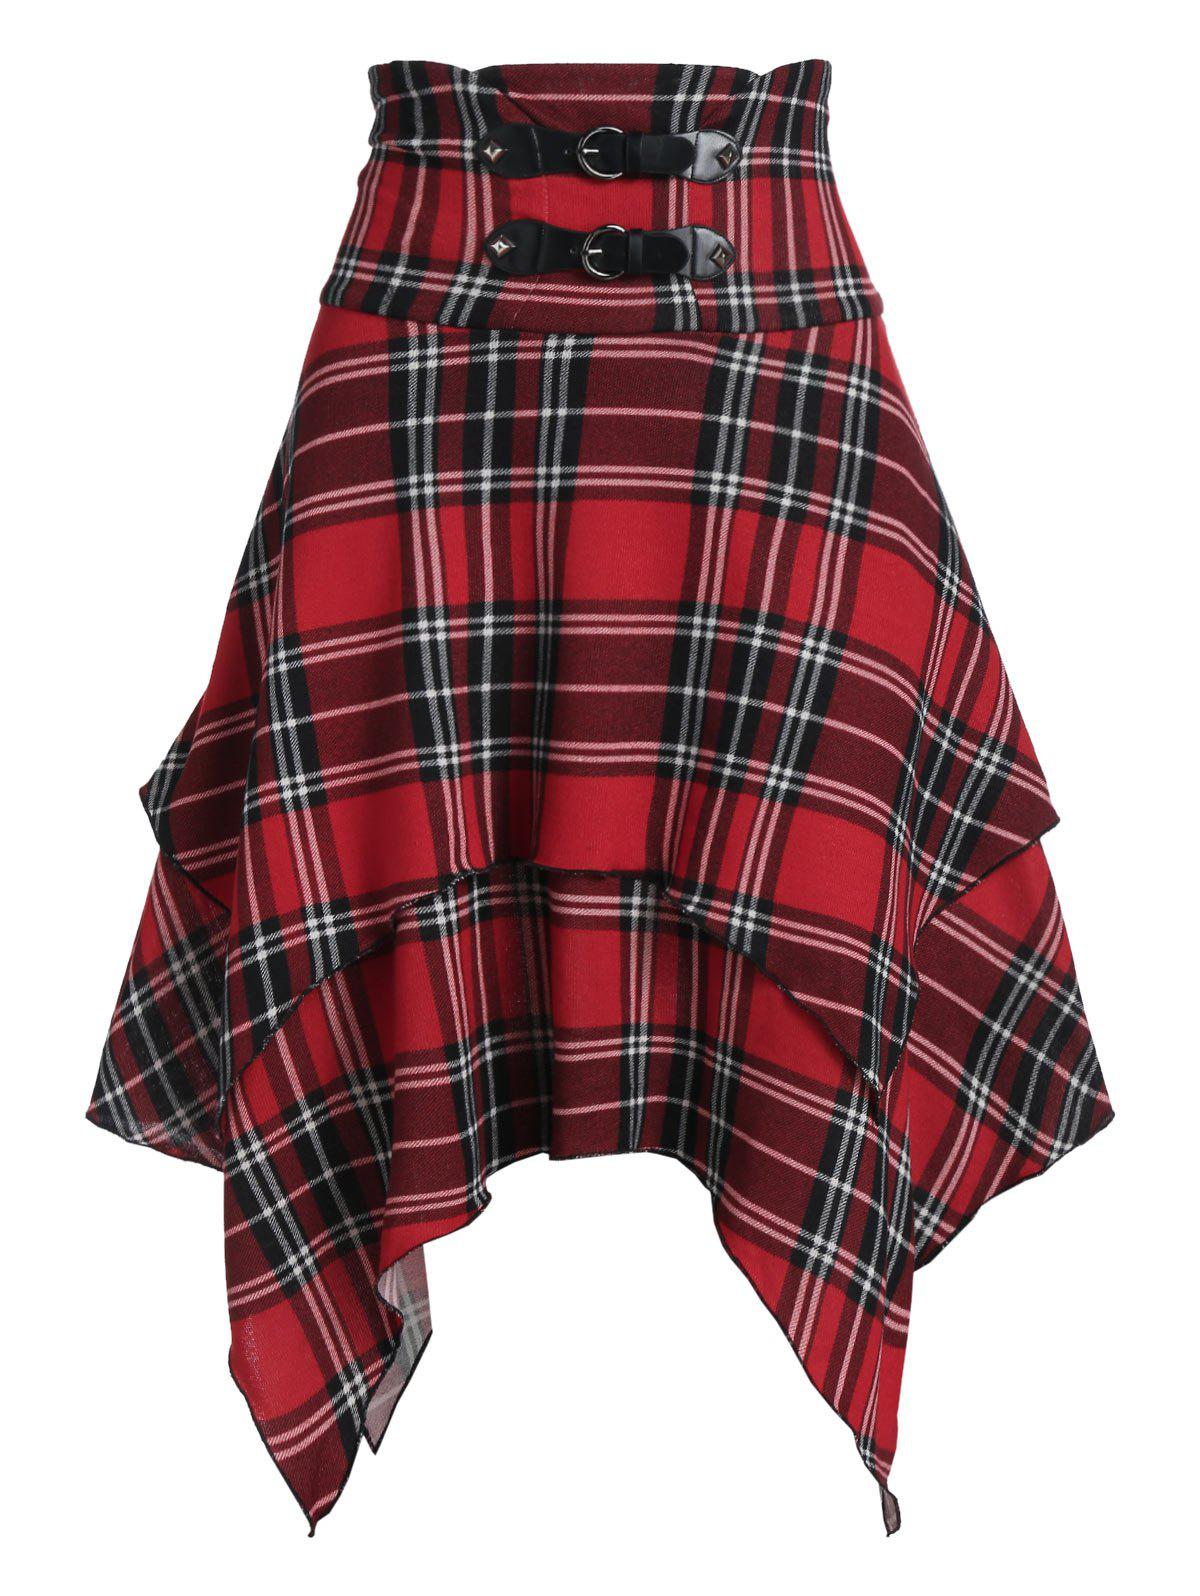 Plaid Print Lace-up Layered Handkerchief Skirt - CHERRY RED 3XL